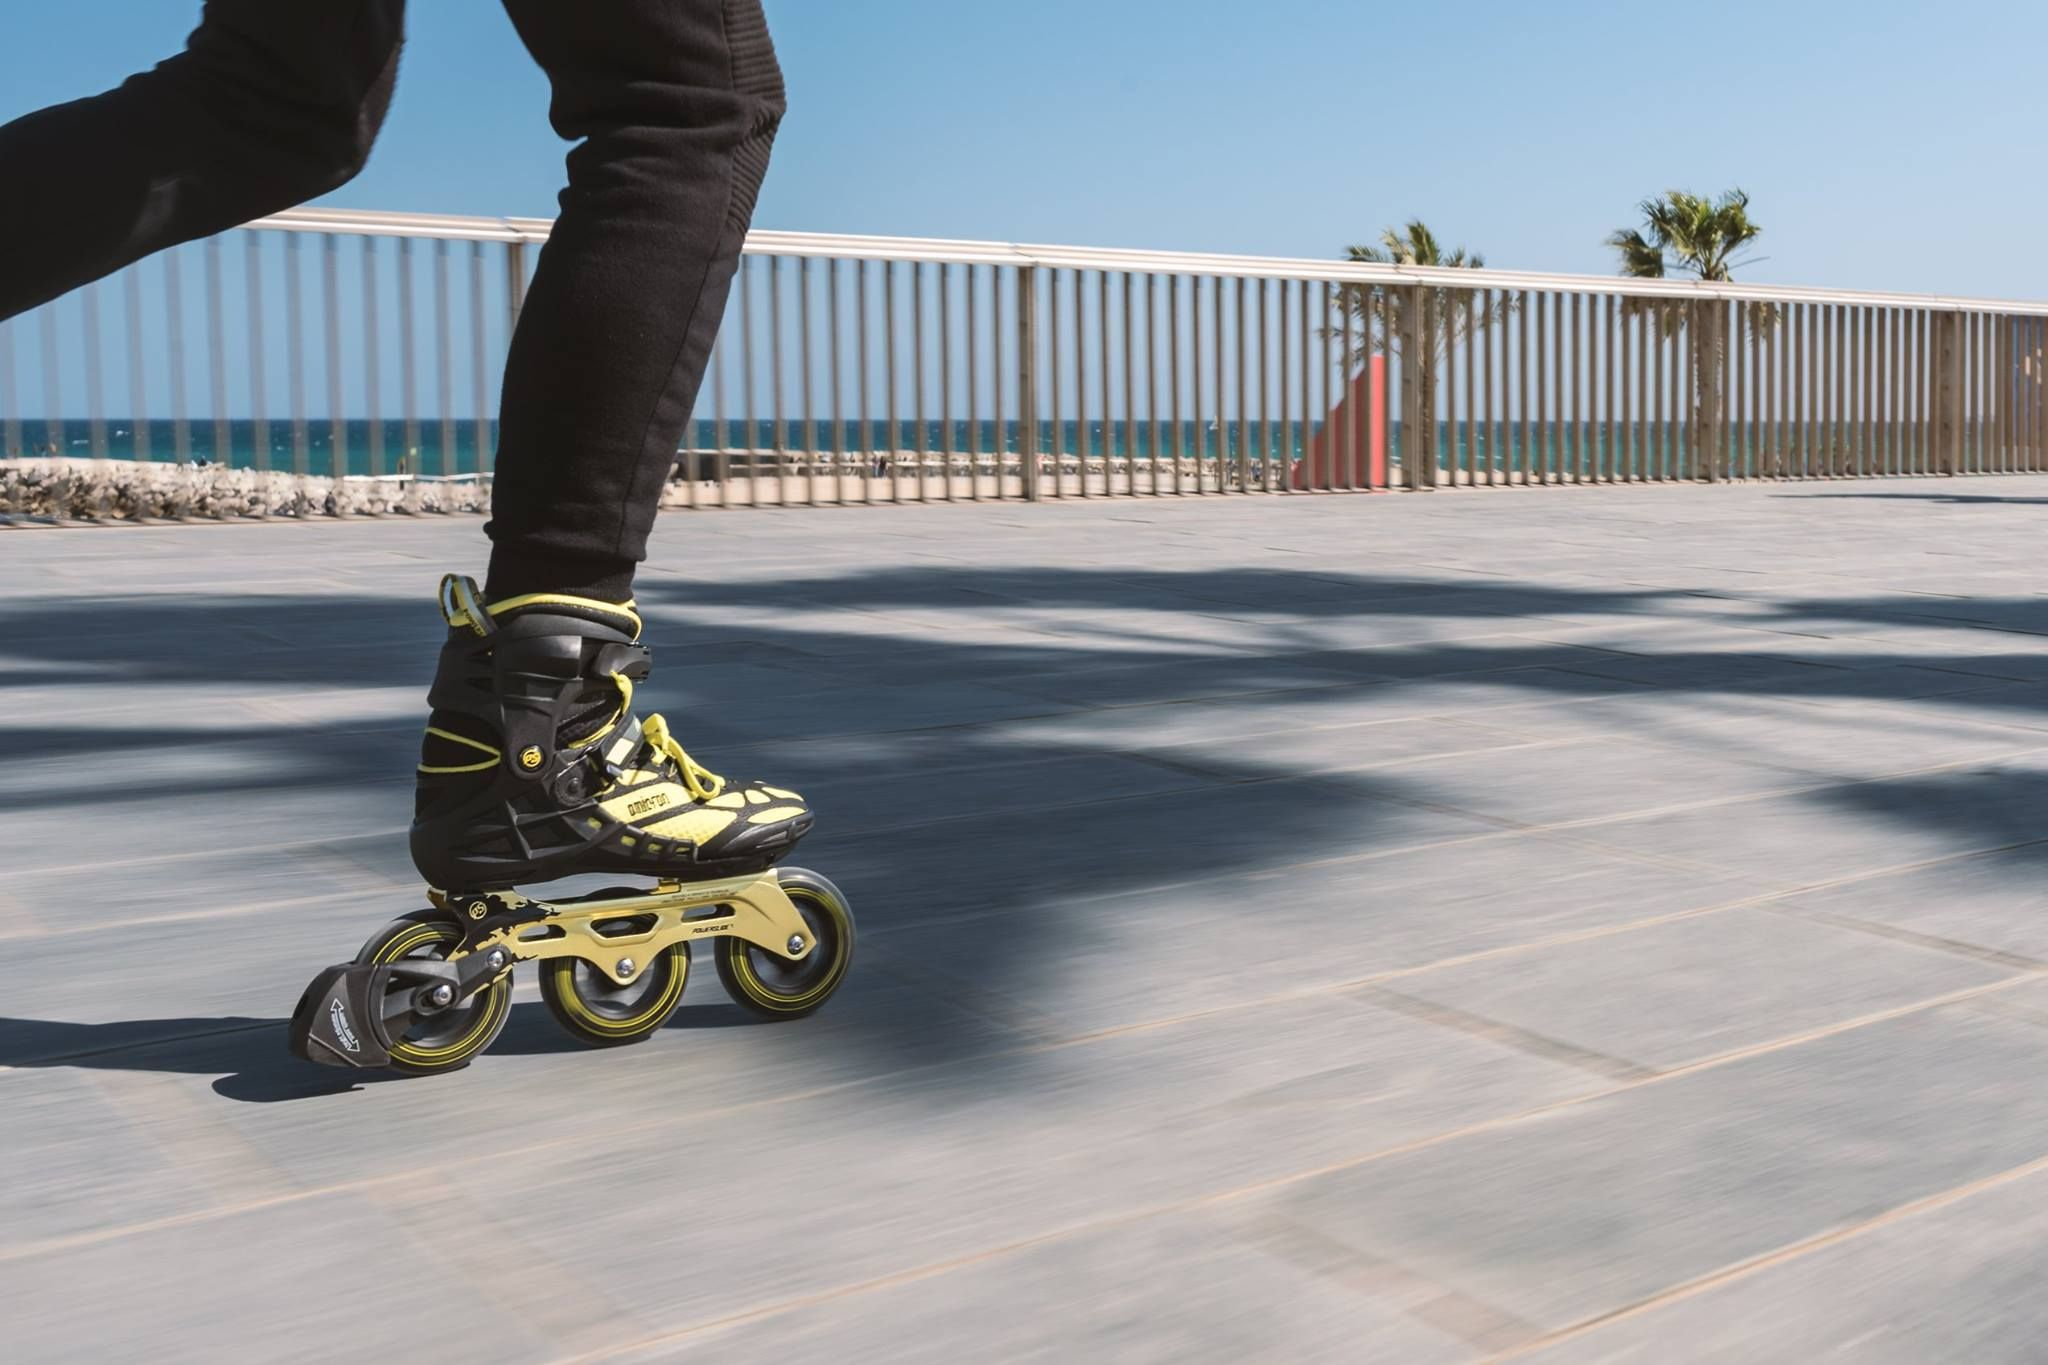 Skate Fast Stop On Point The Powerslide Omicron Triskates Come Stock With Our Height Adjustable Braking System The Habs Th Inline Skating Skate Skateboard